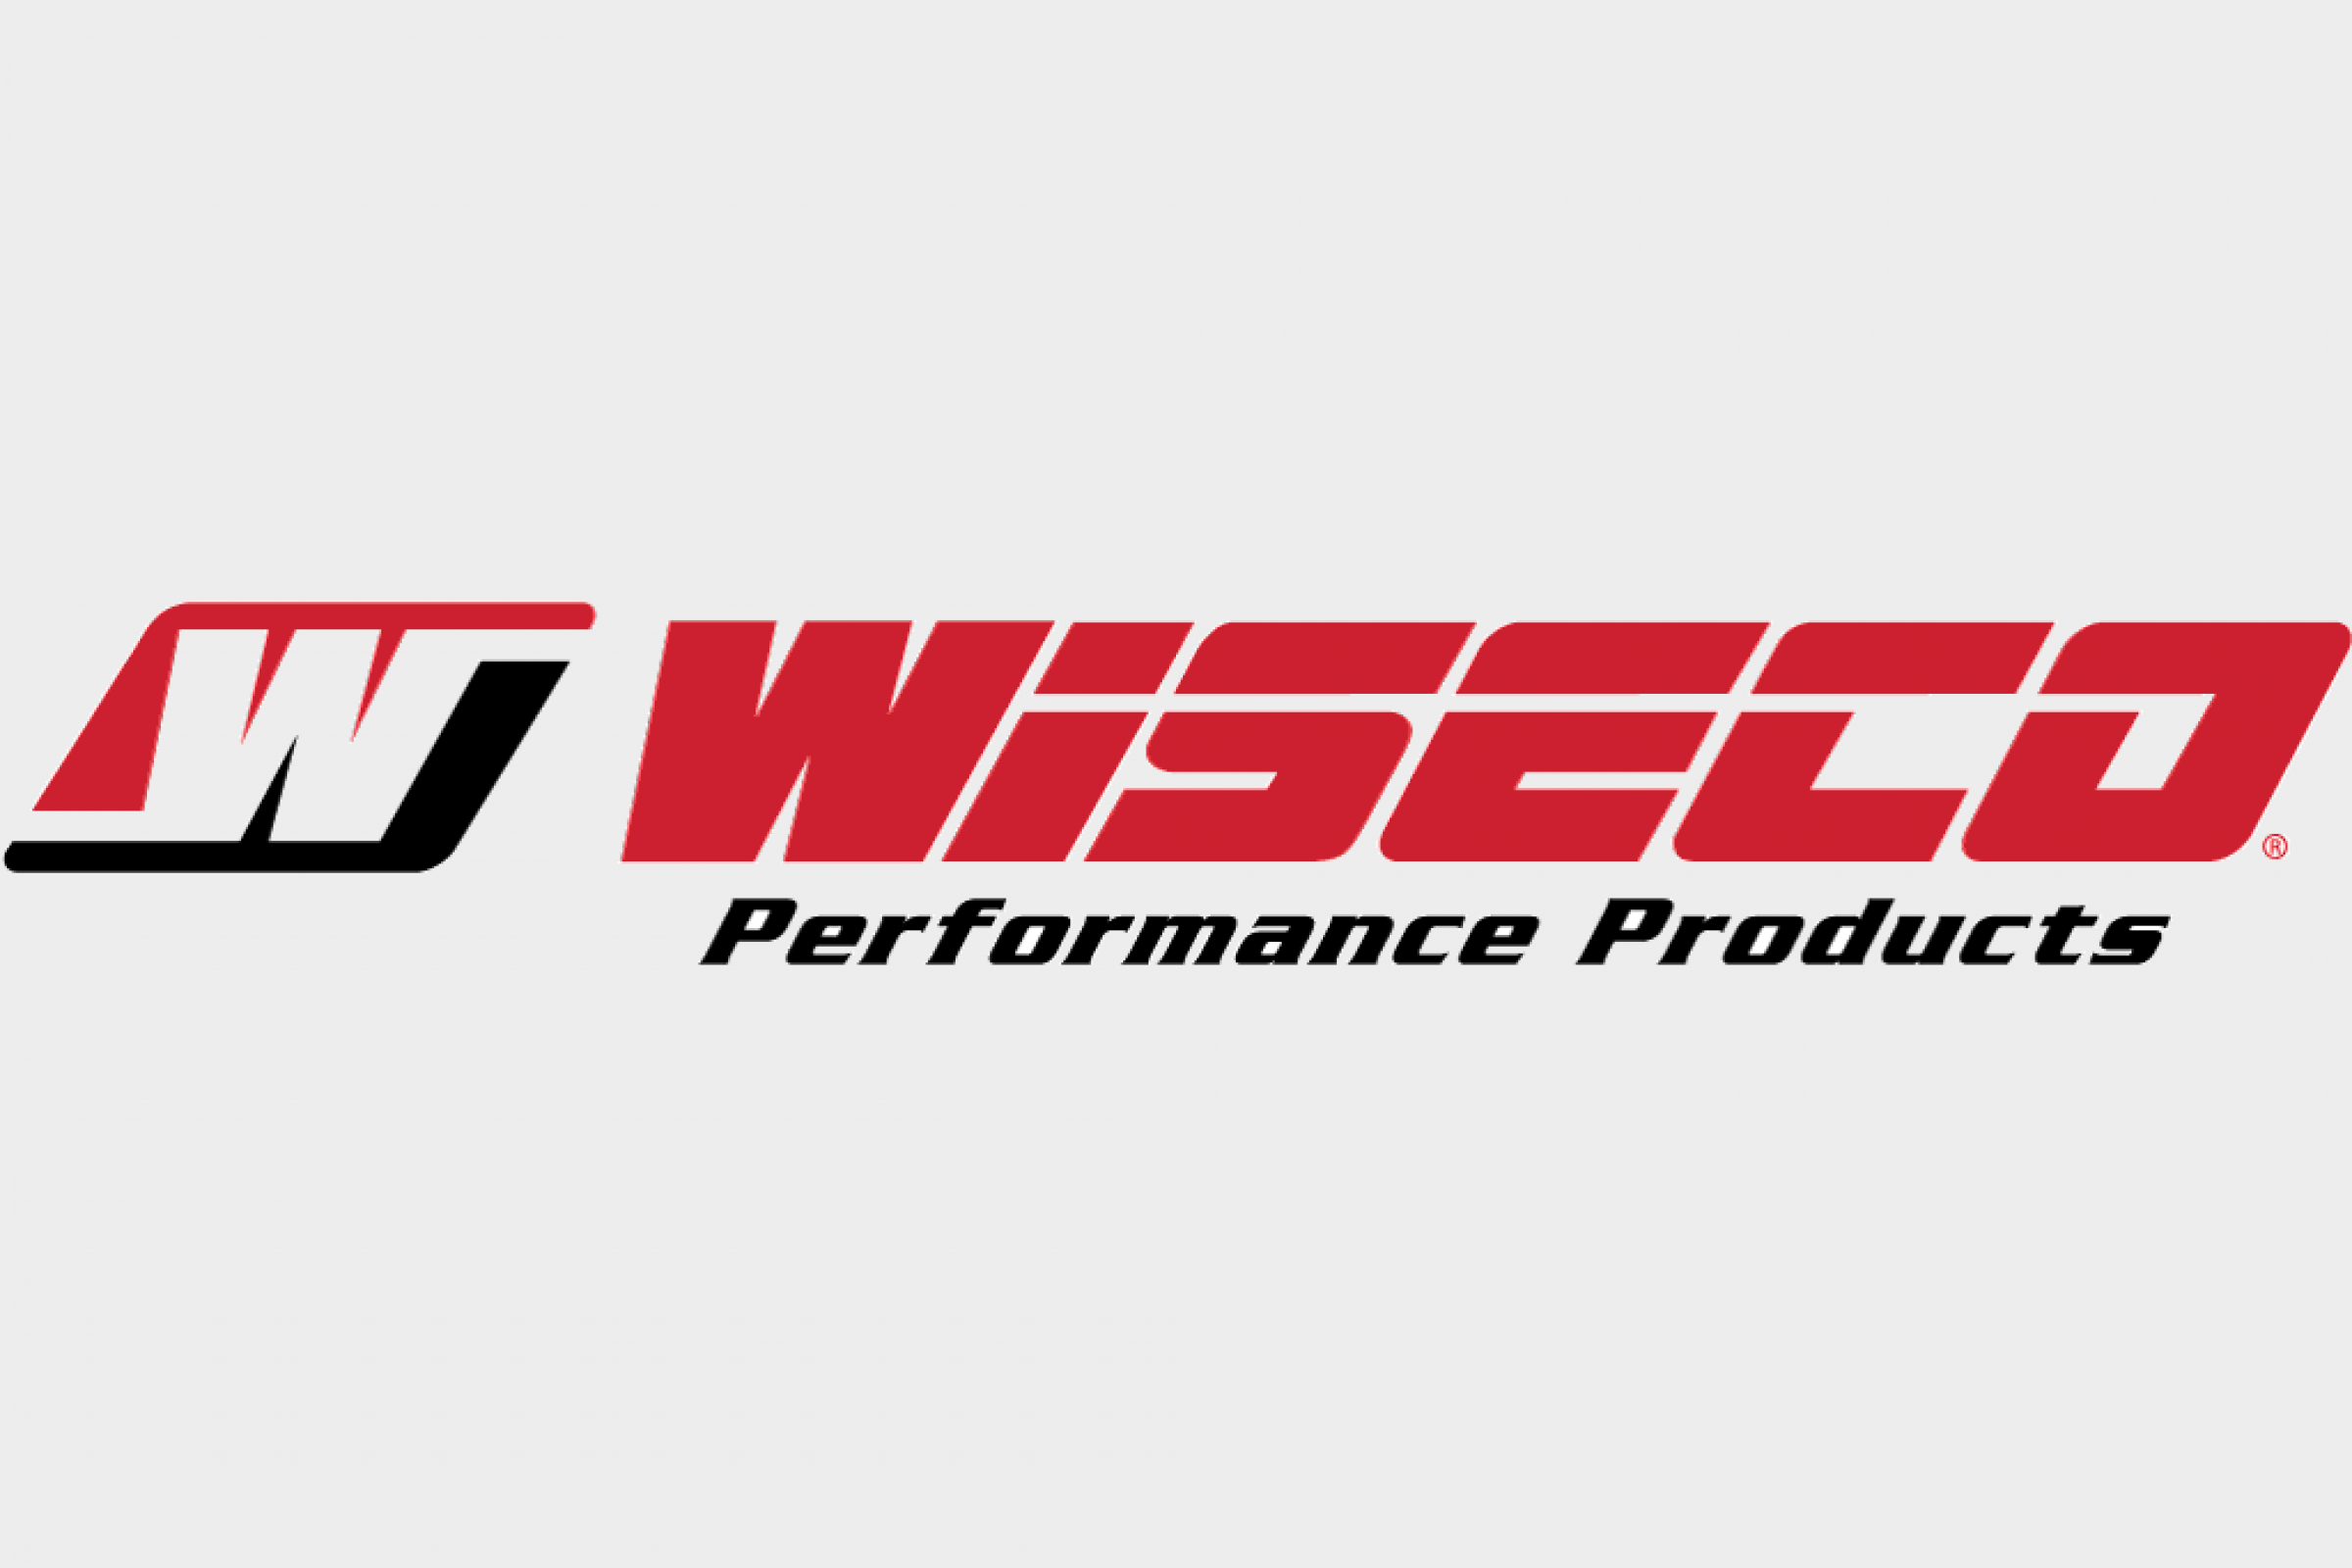 Wiseco Performance Products Rolls Out Minimum Advertised Price Policy